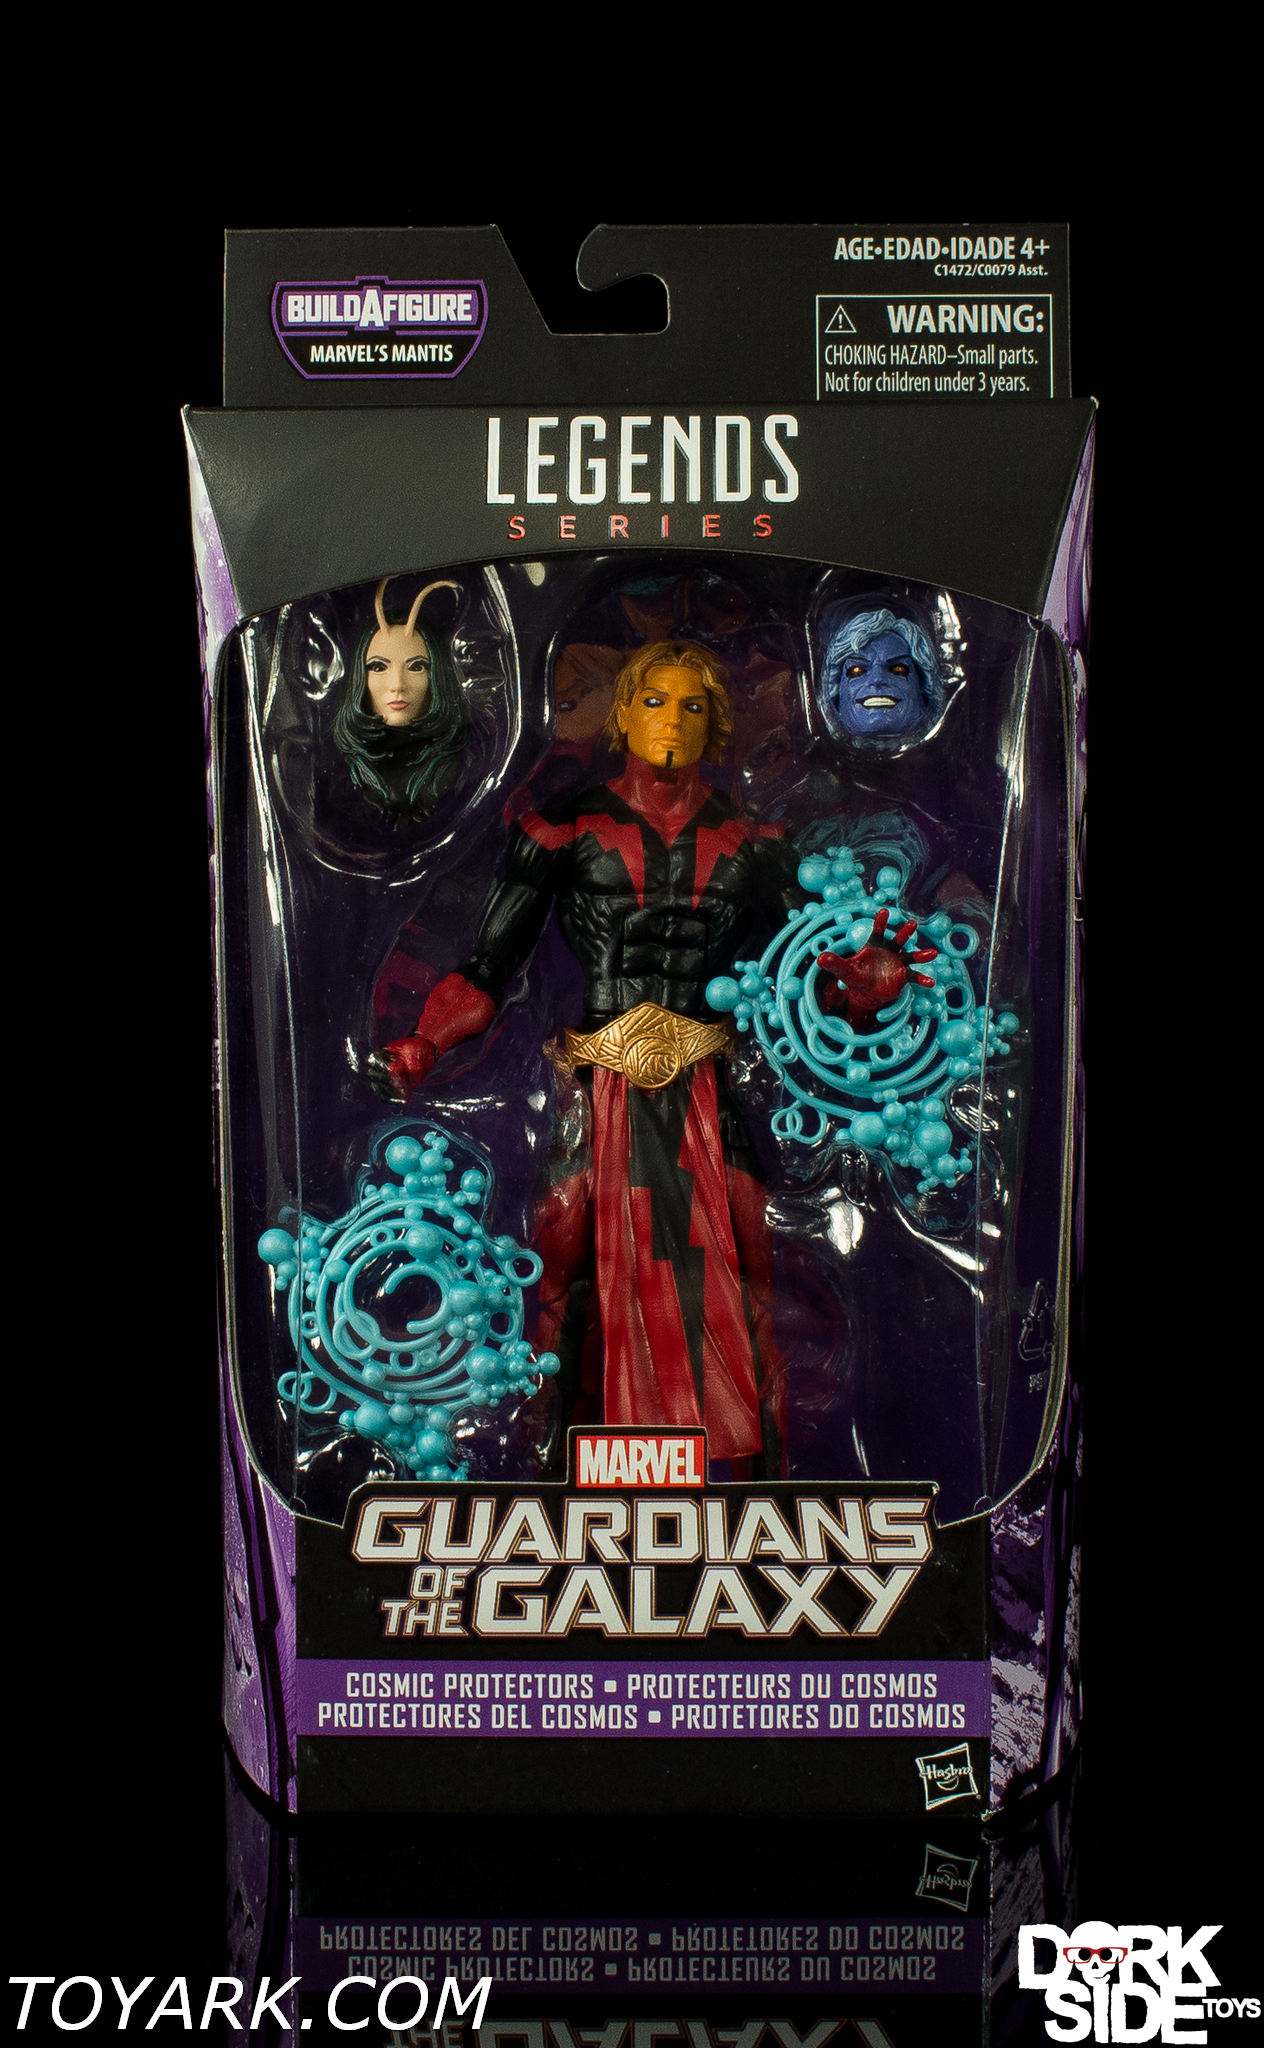 Marvel Legends Guardians of the Galaxy: Vol. 2 Adam Warlock Photo Shoot -  Additional Images